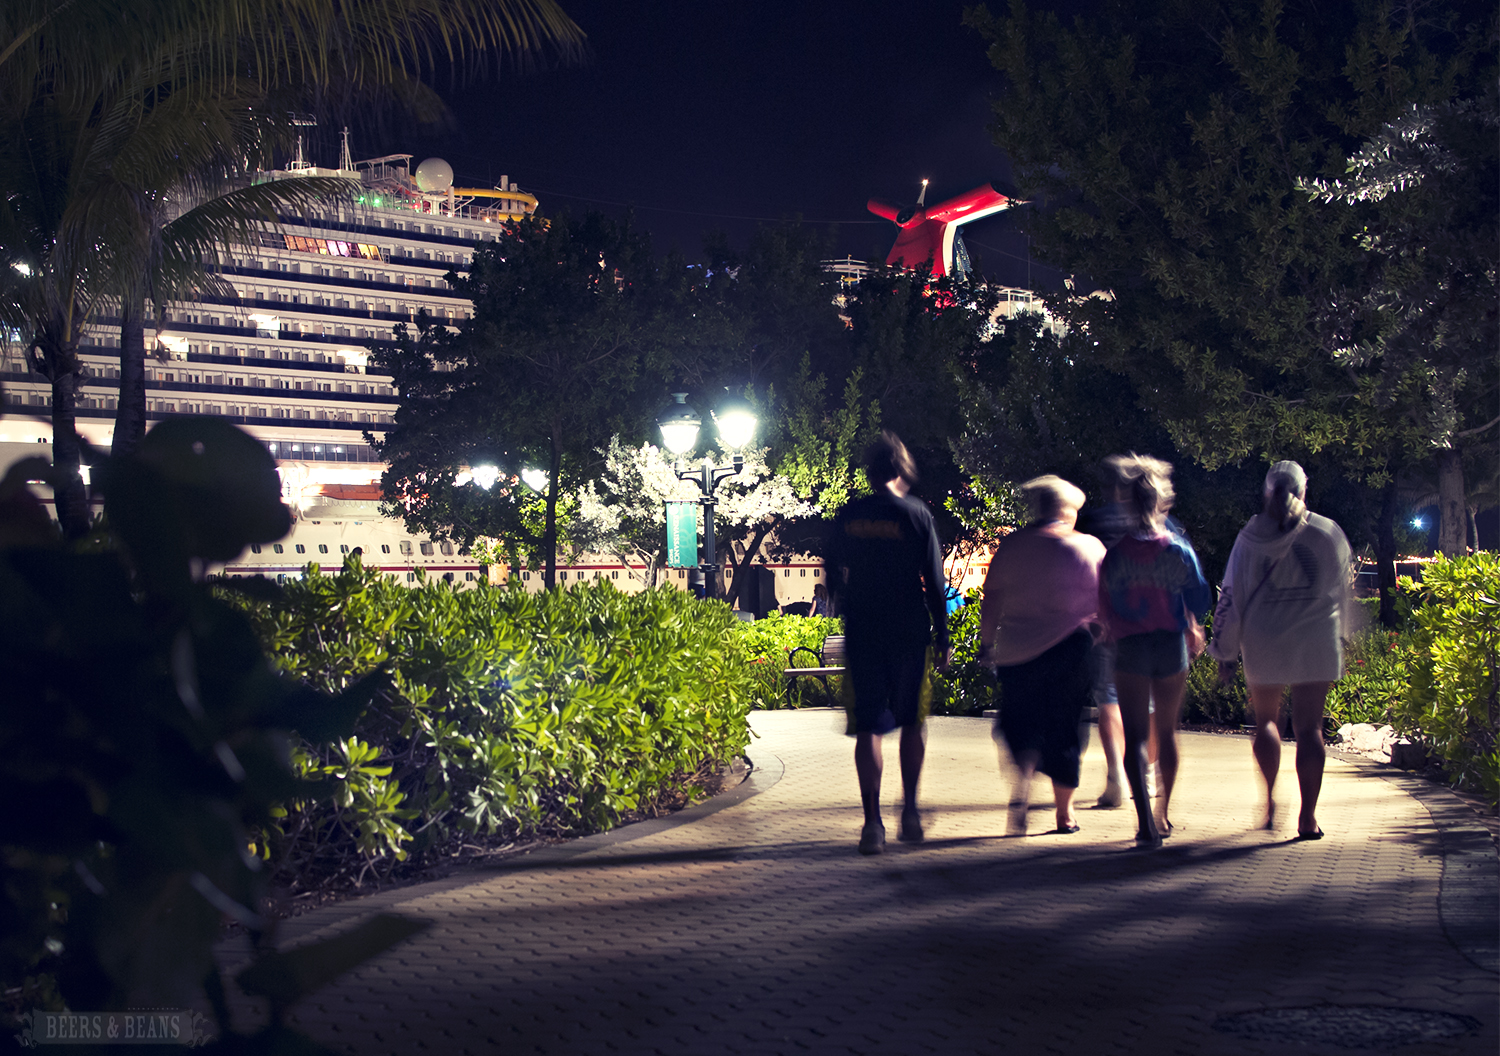 A family walking back to the Carnival Vista at night in the Dutch island Curacao.